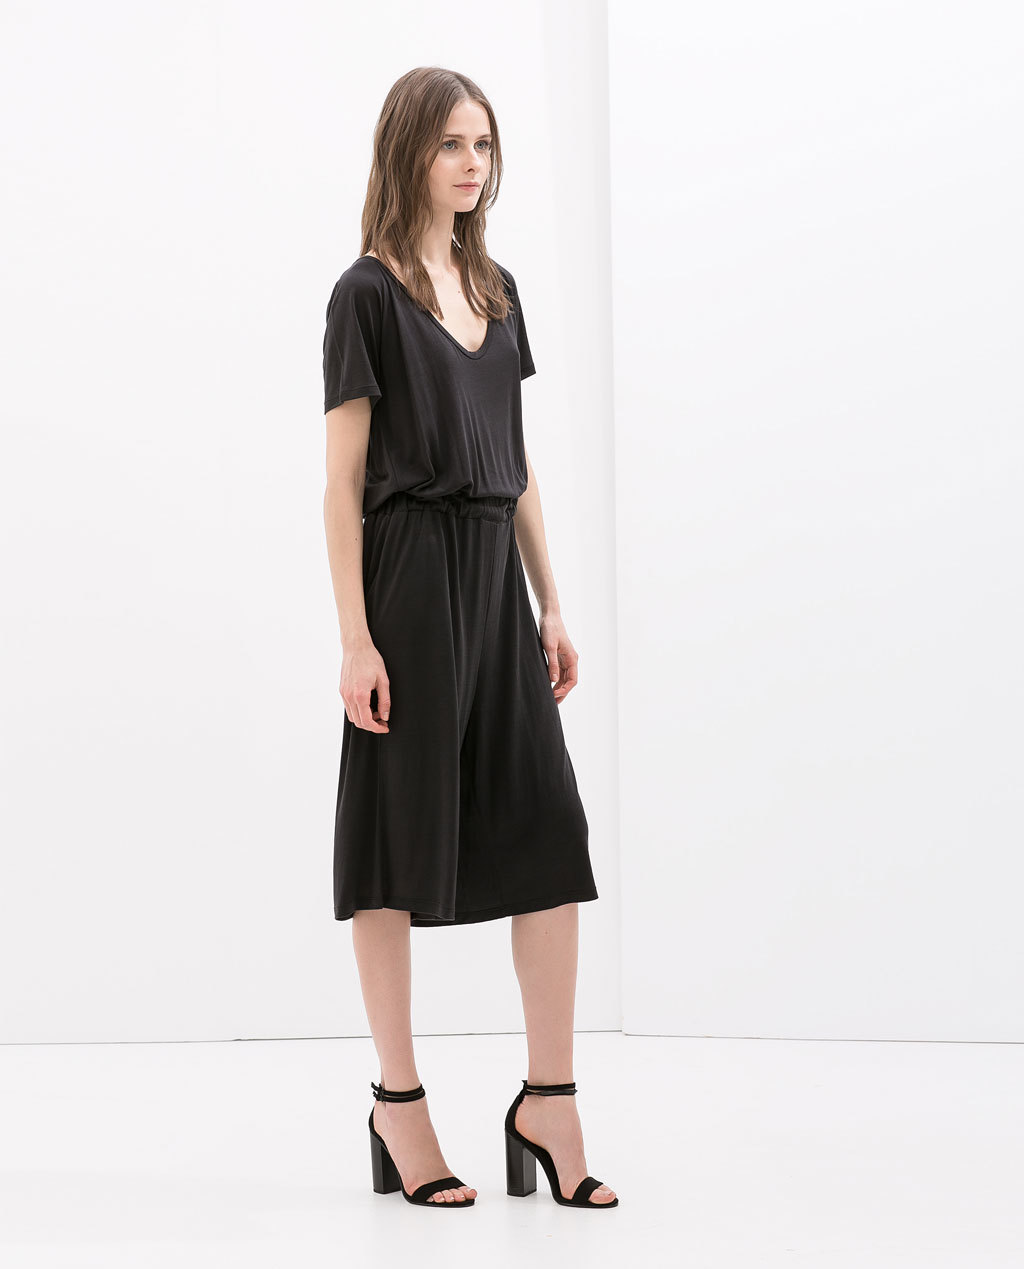 Special Quality Jumpsuit With Cut Outs - neckline: low v-neck; fit: loose; pattern: plain; waist detail: elasticated waist; back detail: back revealing; length: below the knee; predominant colour: black; occasions: casual, evening; fibres: viscose/rayon - 100%; sleeve length: short sleeve; sleeve style: standard; style: jumpsuit; pattern type: fabric; texture group: jersey - stretchy/drapey; season: s/s 2014; wardrobe: highlight